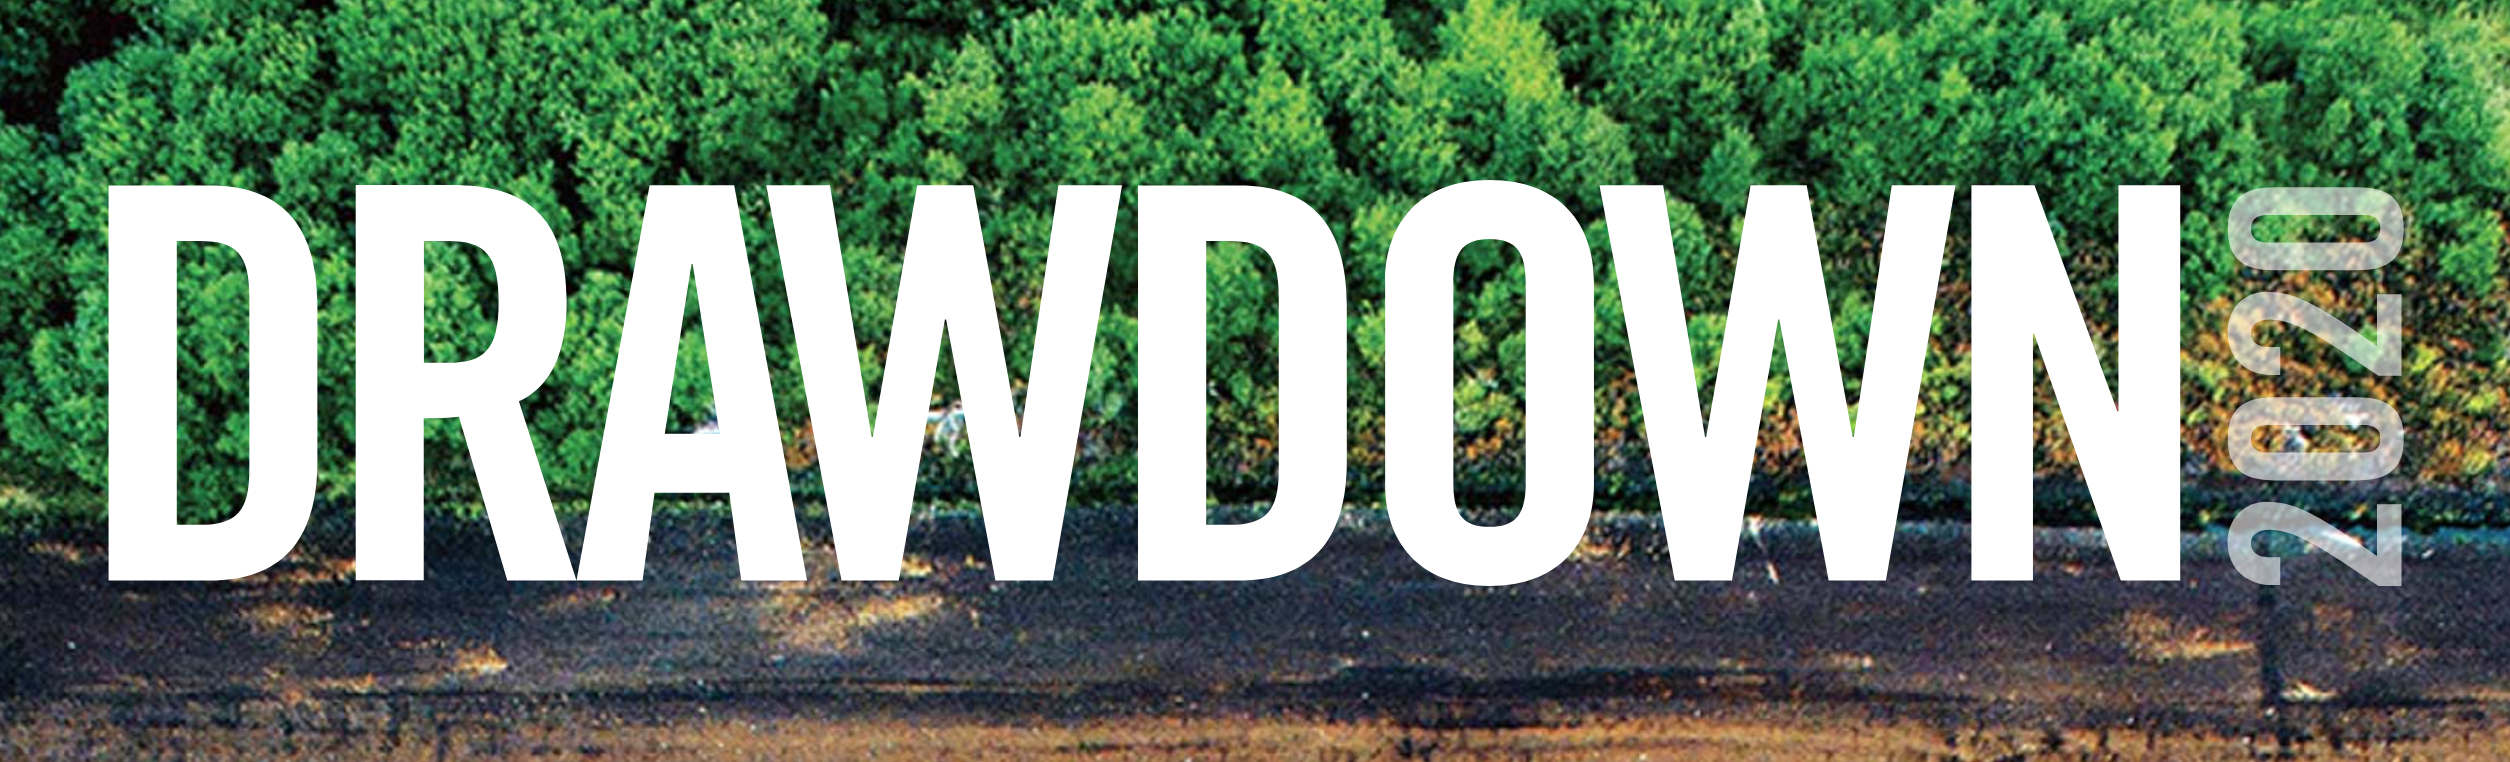 A lush green forest above a strip of dirt road, with the words DRAWDOWN 2020 in white overlaid on top of the image.